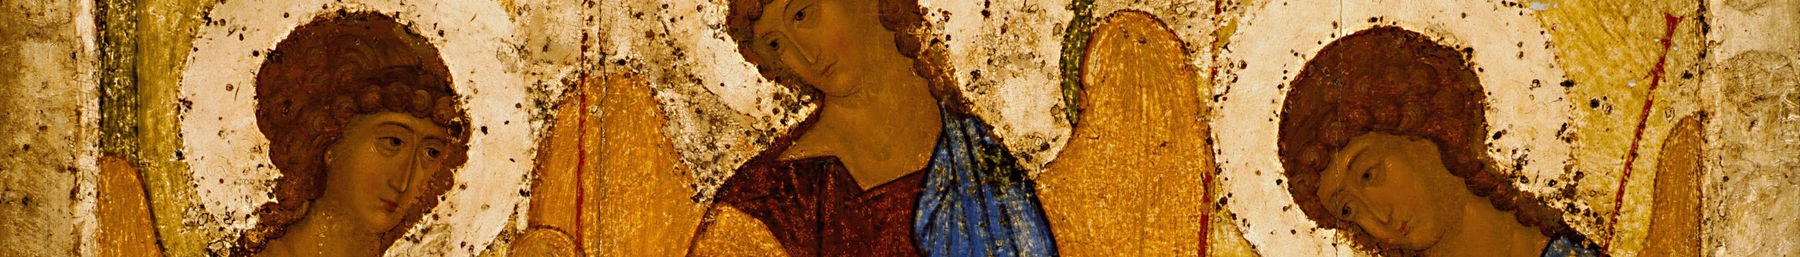 The Holy Trinity, by the 14th Century Russian master, Andrei Rublev